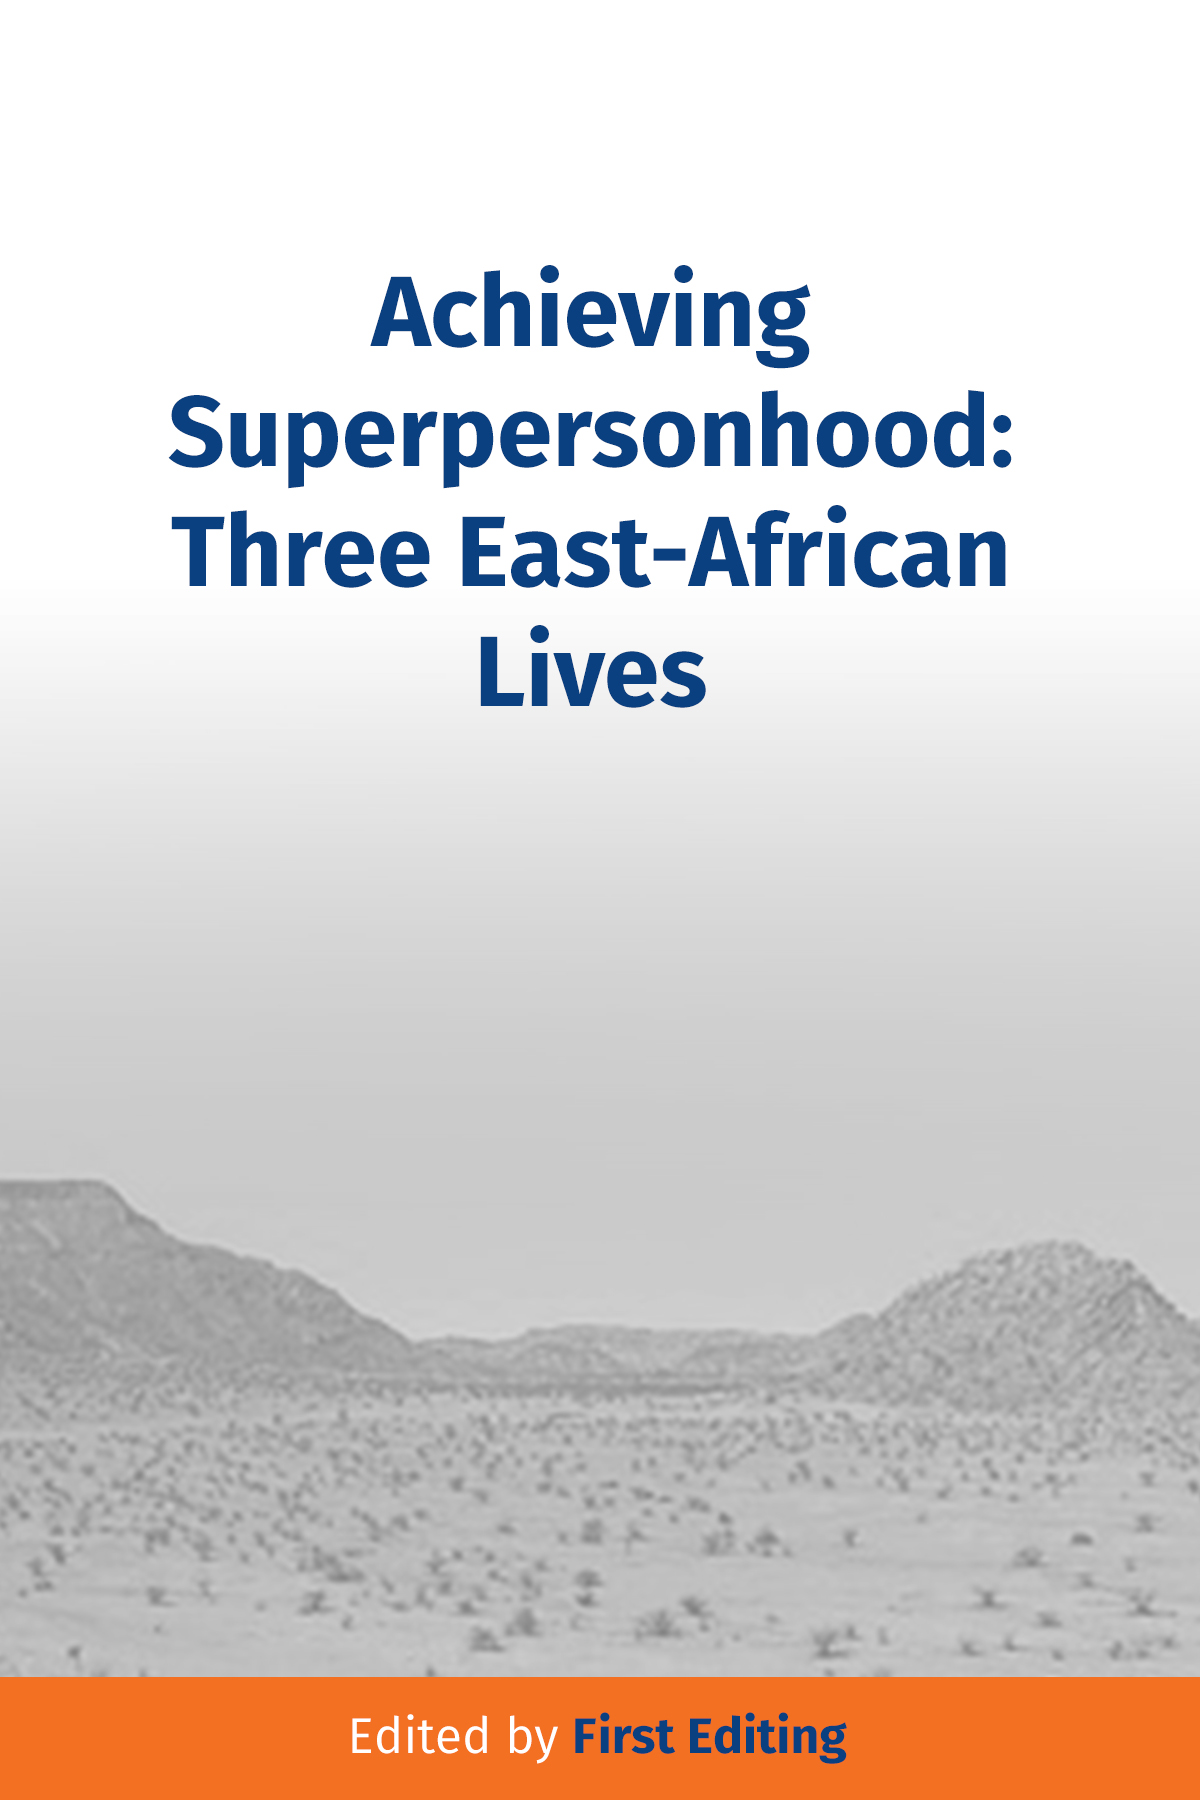 Achieving Superpersonhood: Three East African Lives  (change in title) - book author William